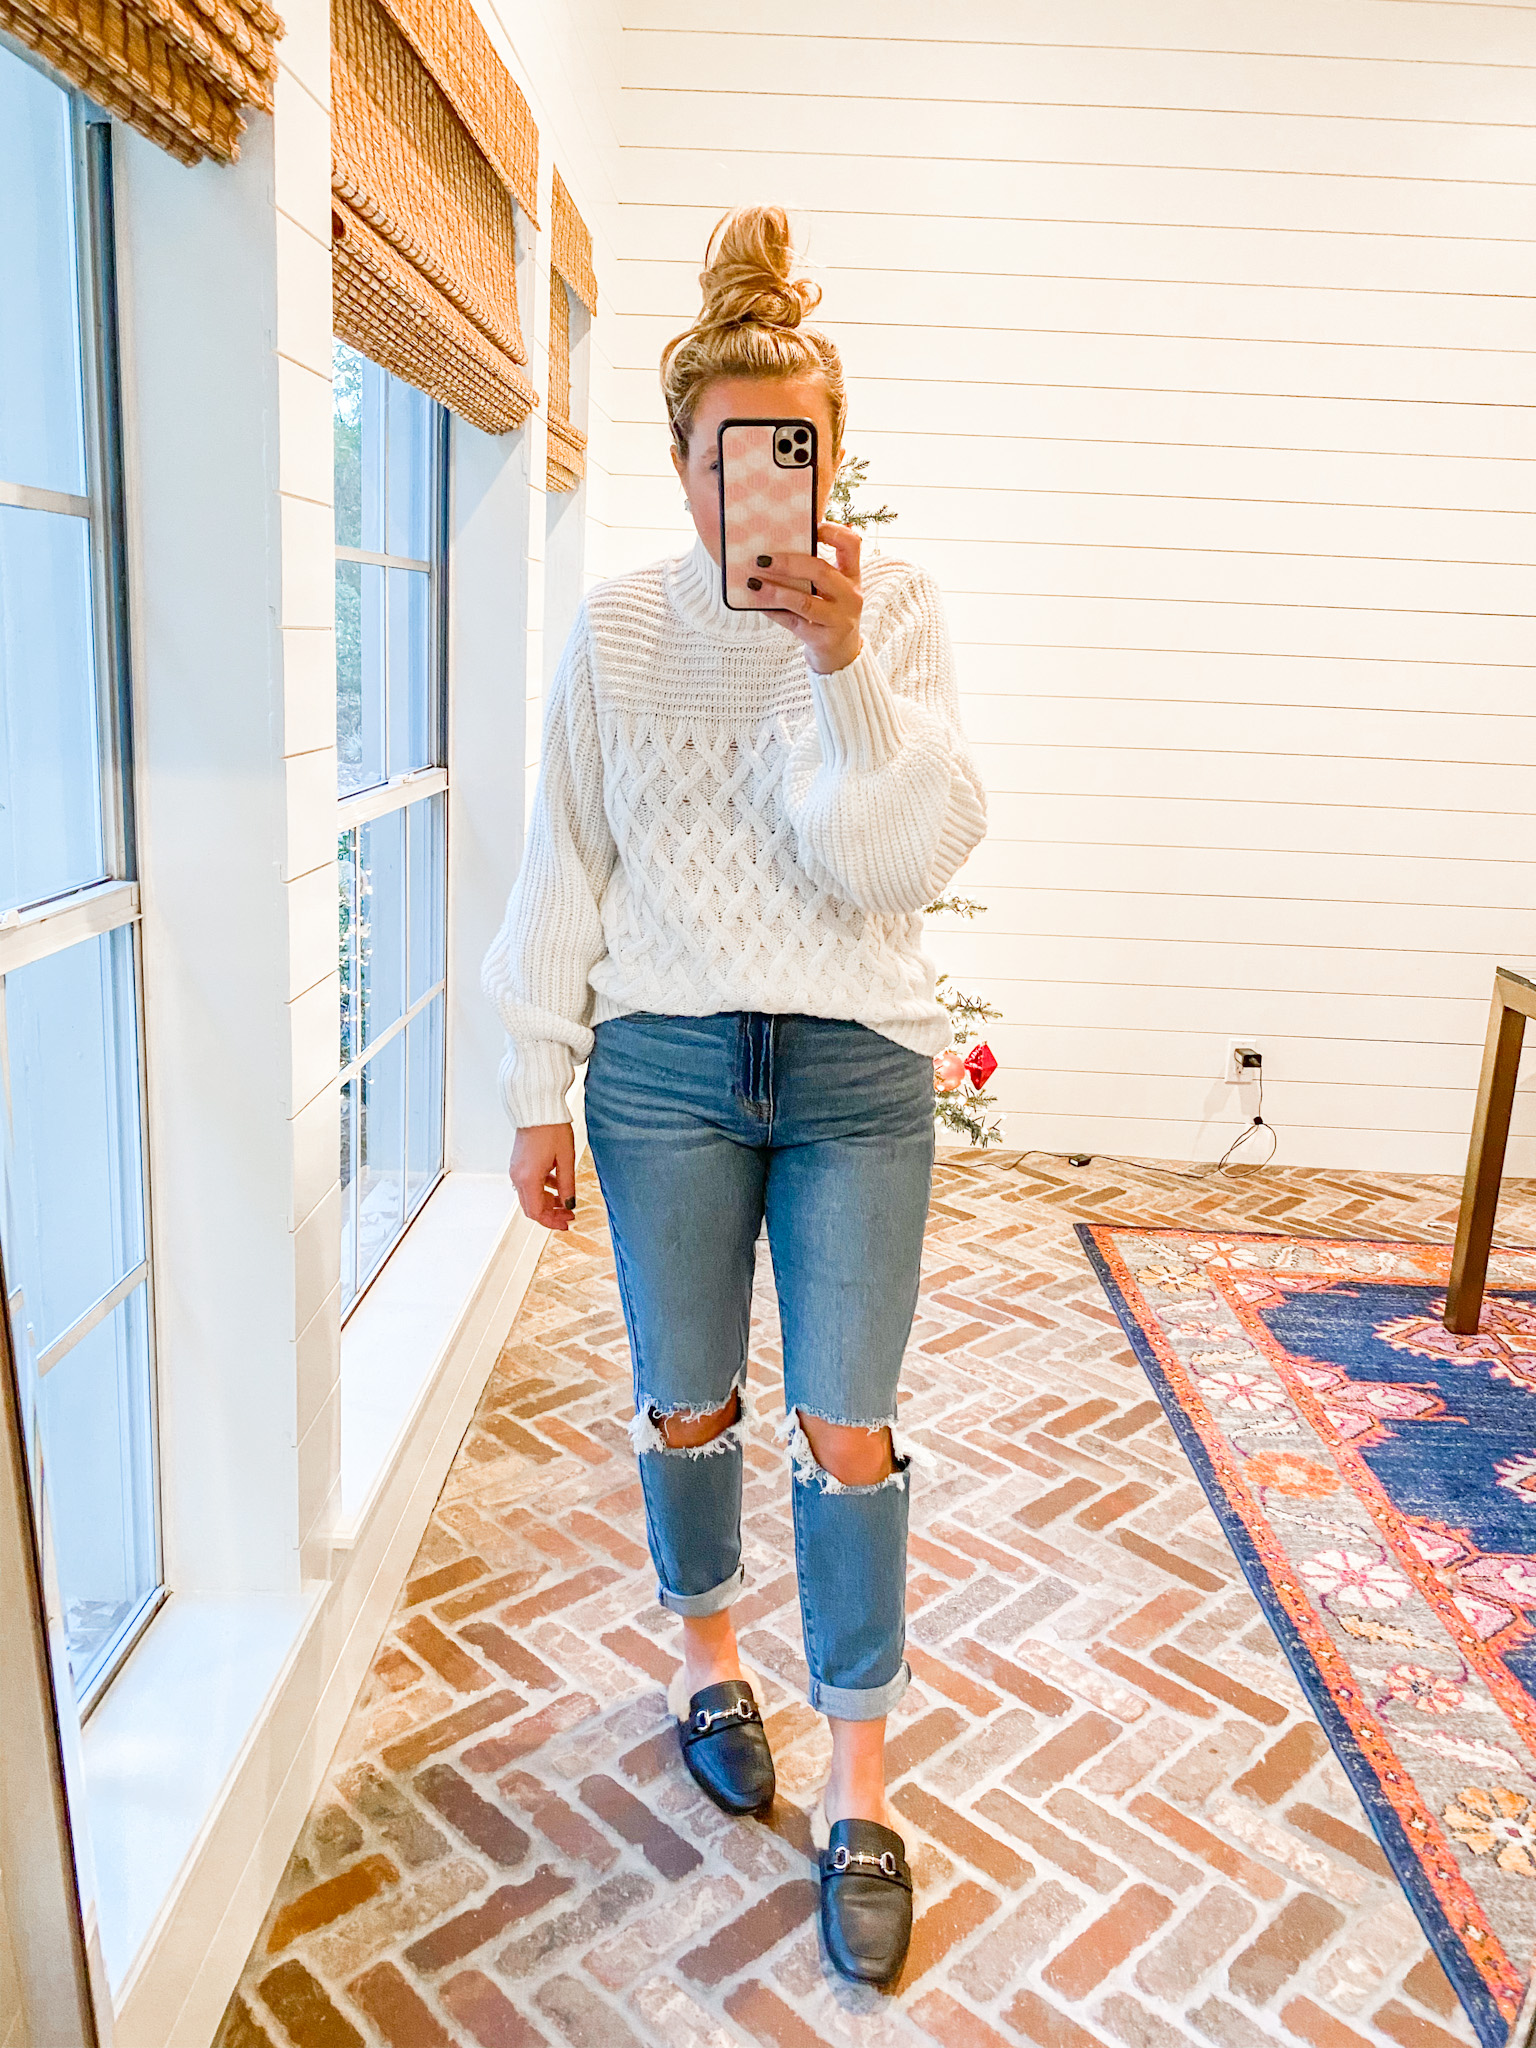 Walmart Womens Clothes by popular Houston fashion blog, Fancy Ashley: image of a woman wearing a Walmart Scoop Scoop Women's Cable Knit Turtleneck Sweater, faux fur lined black mules, and Walmart No Boundaries Juniors' Mom Jeans.